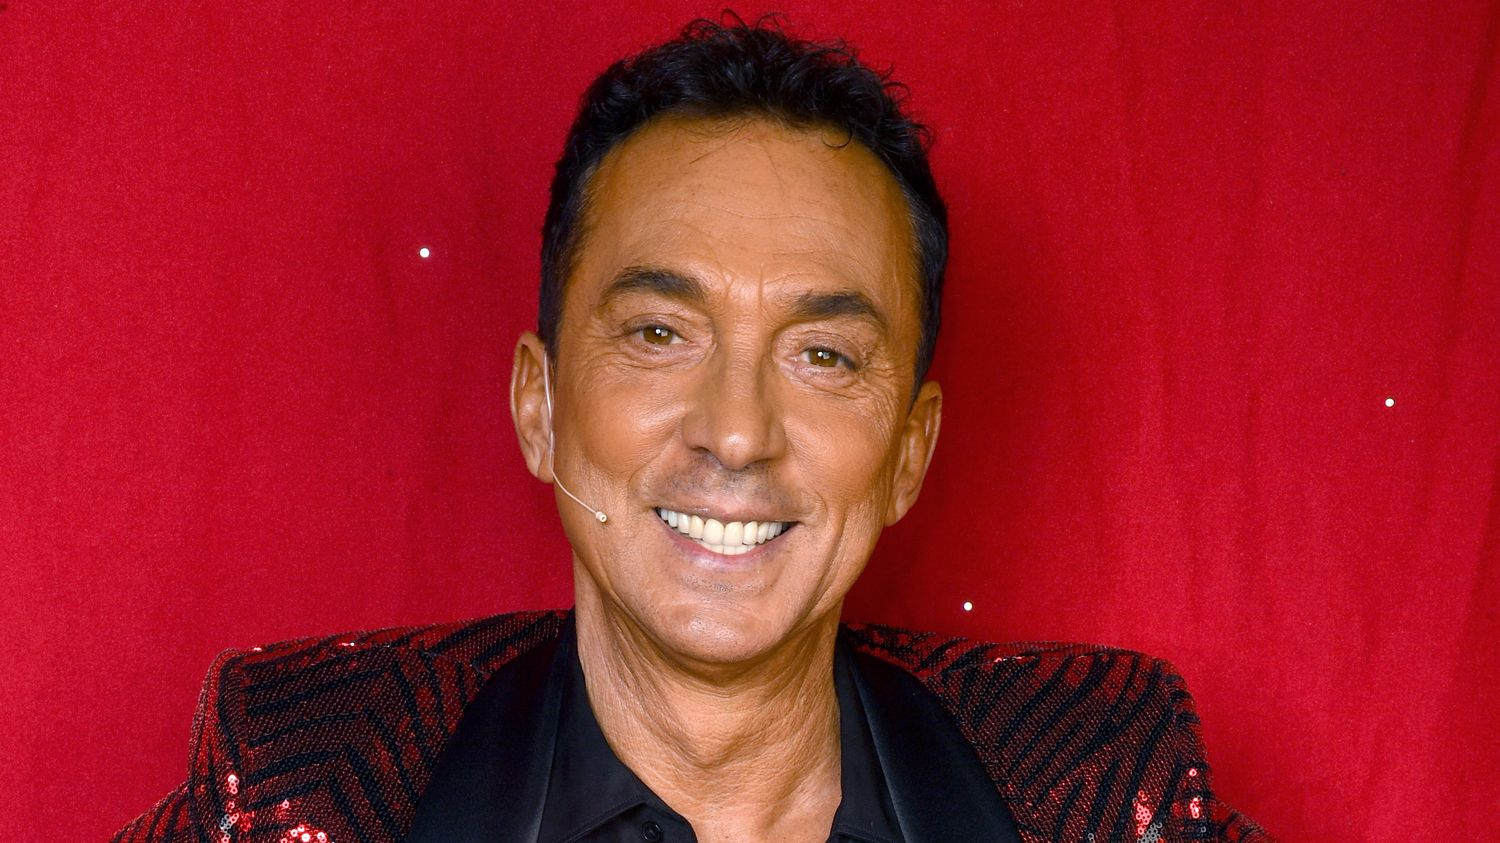 Strictly's Bruno Tonioli debuts new look as he embraces grey hair